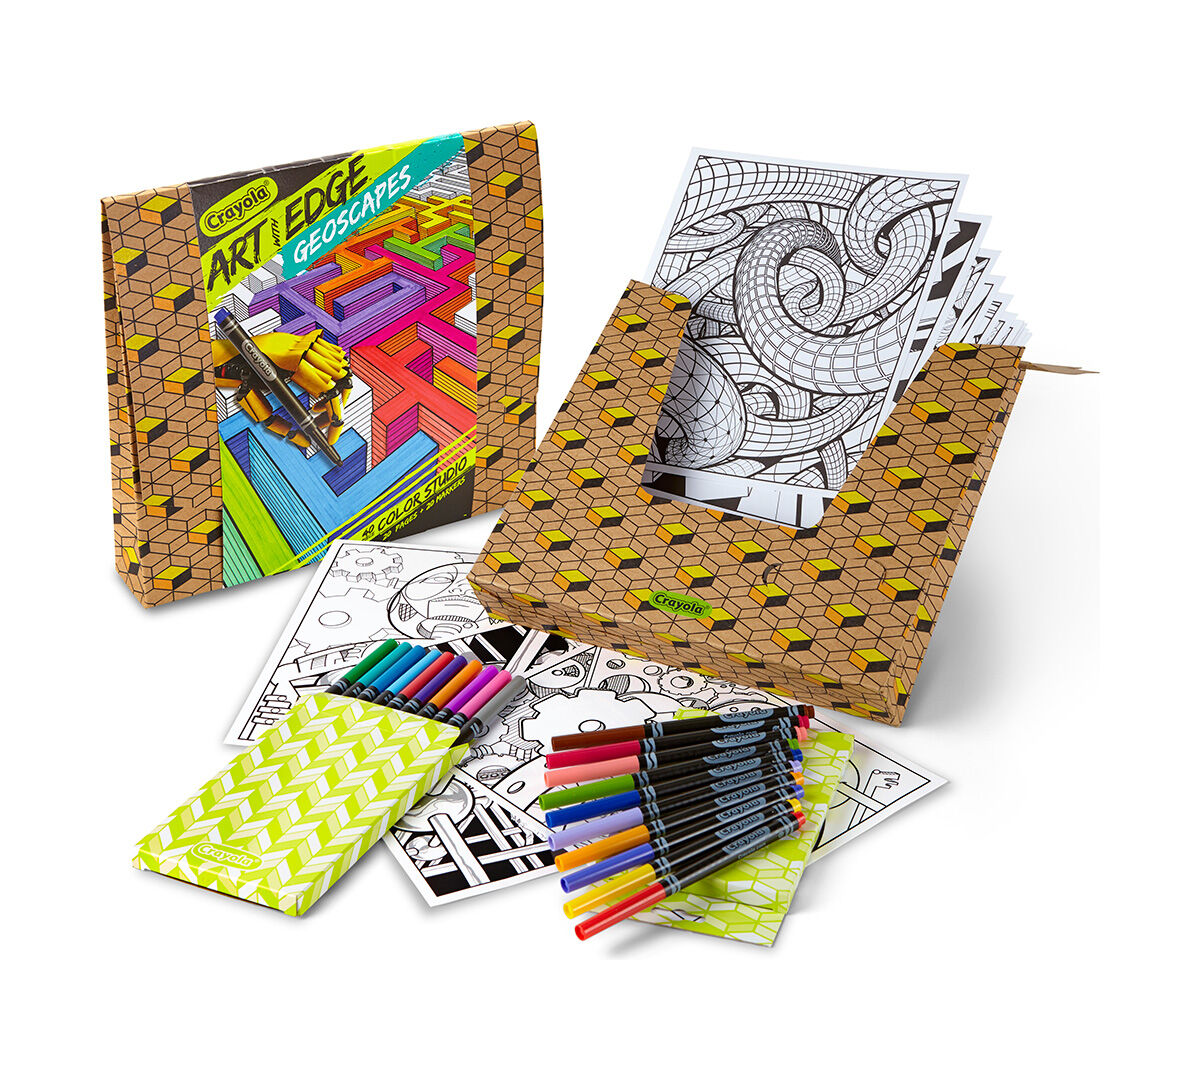 <p>Welcome to the world of creativity! Break out your Crayola Markers and start living on the edge! Just add your imagination to these mind-bending pages, and you'll be prepared for the shape of things to come! Includes 20 Premium Color Pages and 20 Fine Line Markers! Perfect size for framing at 8 inches x 10 inches</p>